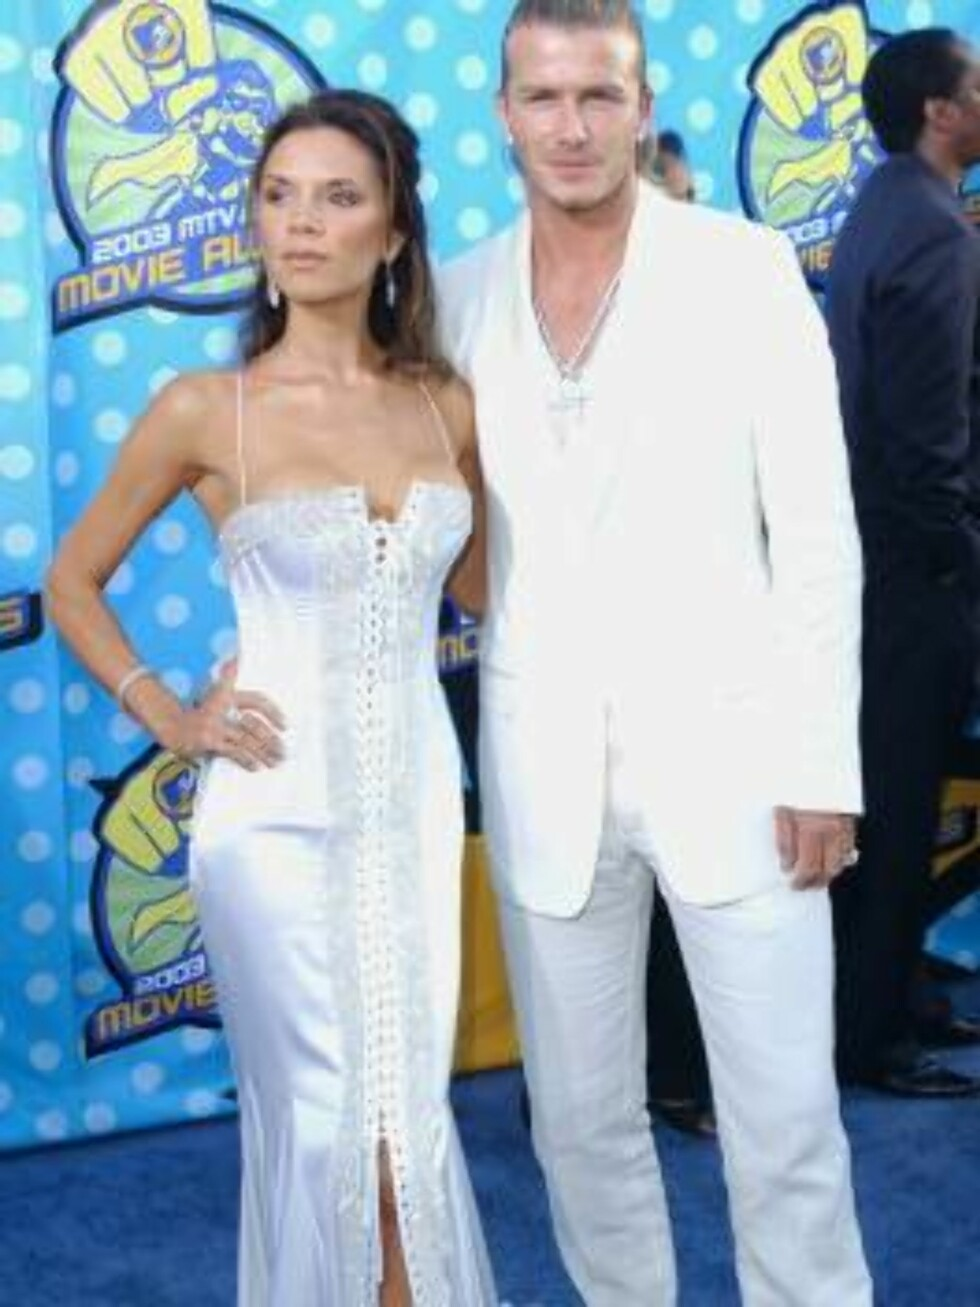 LOS ANGELES - MAY 31: (FILE PHOTO - UK NEWSPAPERS OUT)  Victoria and David Beckham attend The 2003 MTV Movie Awards held at the Shrine Auditorium on May 31, 2003 in Los Angeles, California.   (Photo by Dave Hogan/Getty Images)  * SPECIAL INSTRUCTIONS: UK Foto: All Over Press